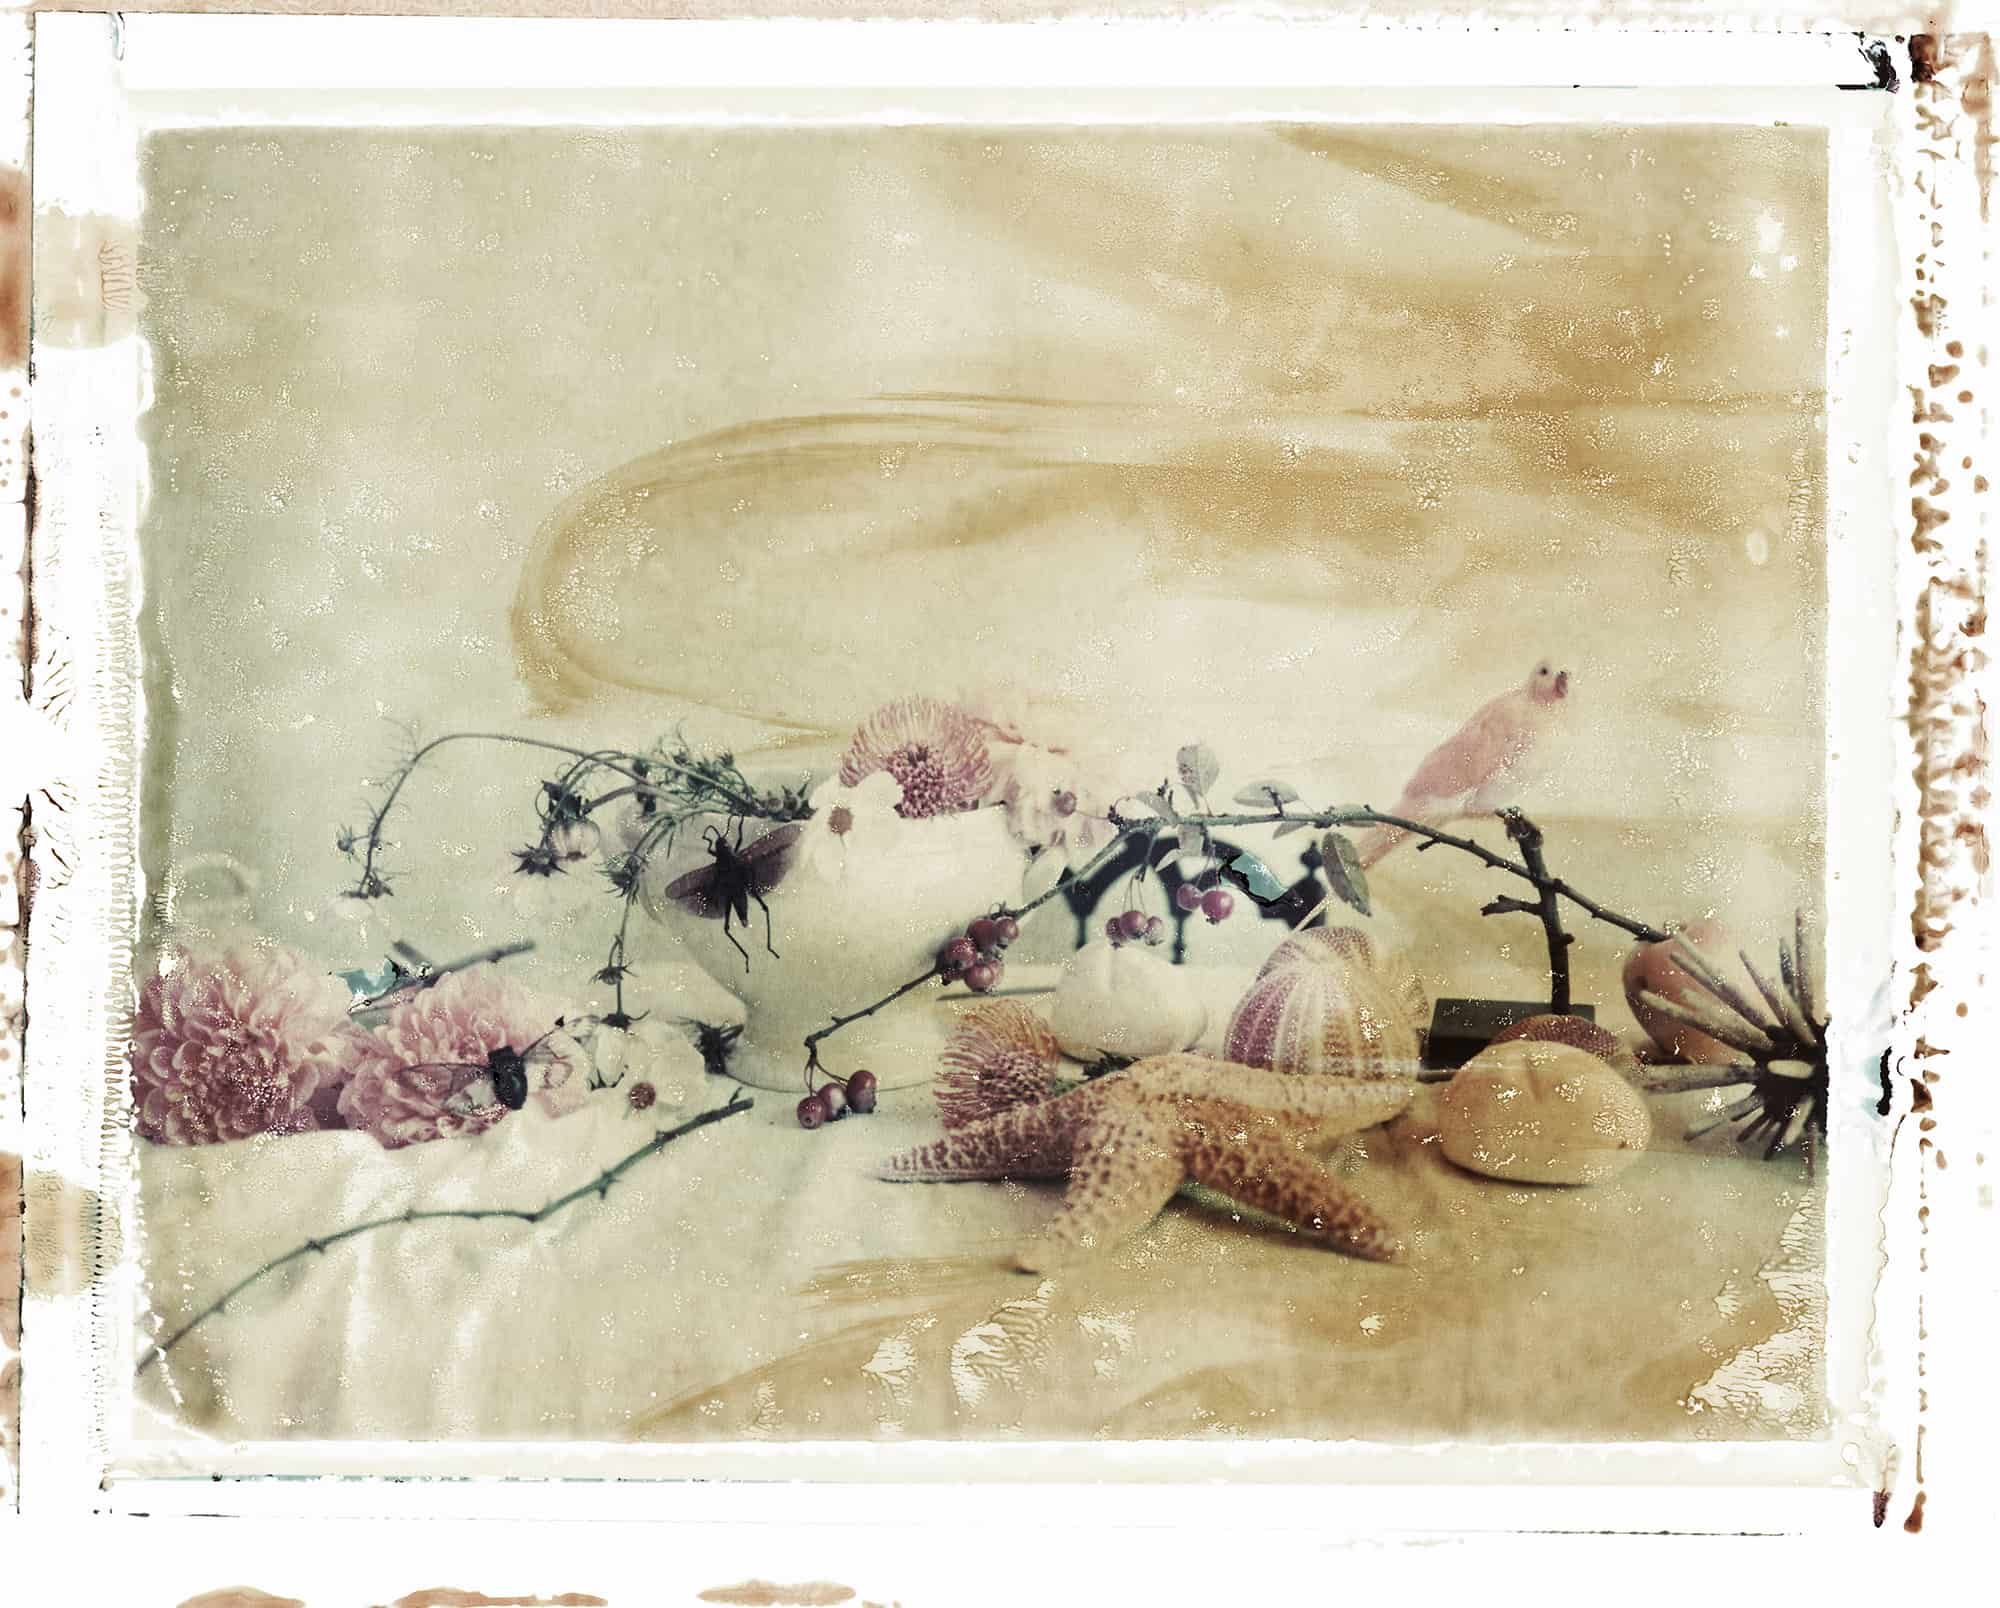 Fine art color photography of still life with flowers, sea shells, starfish, canary and insects. Inspired by Japanese paintings.